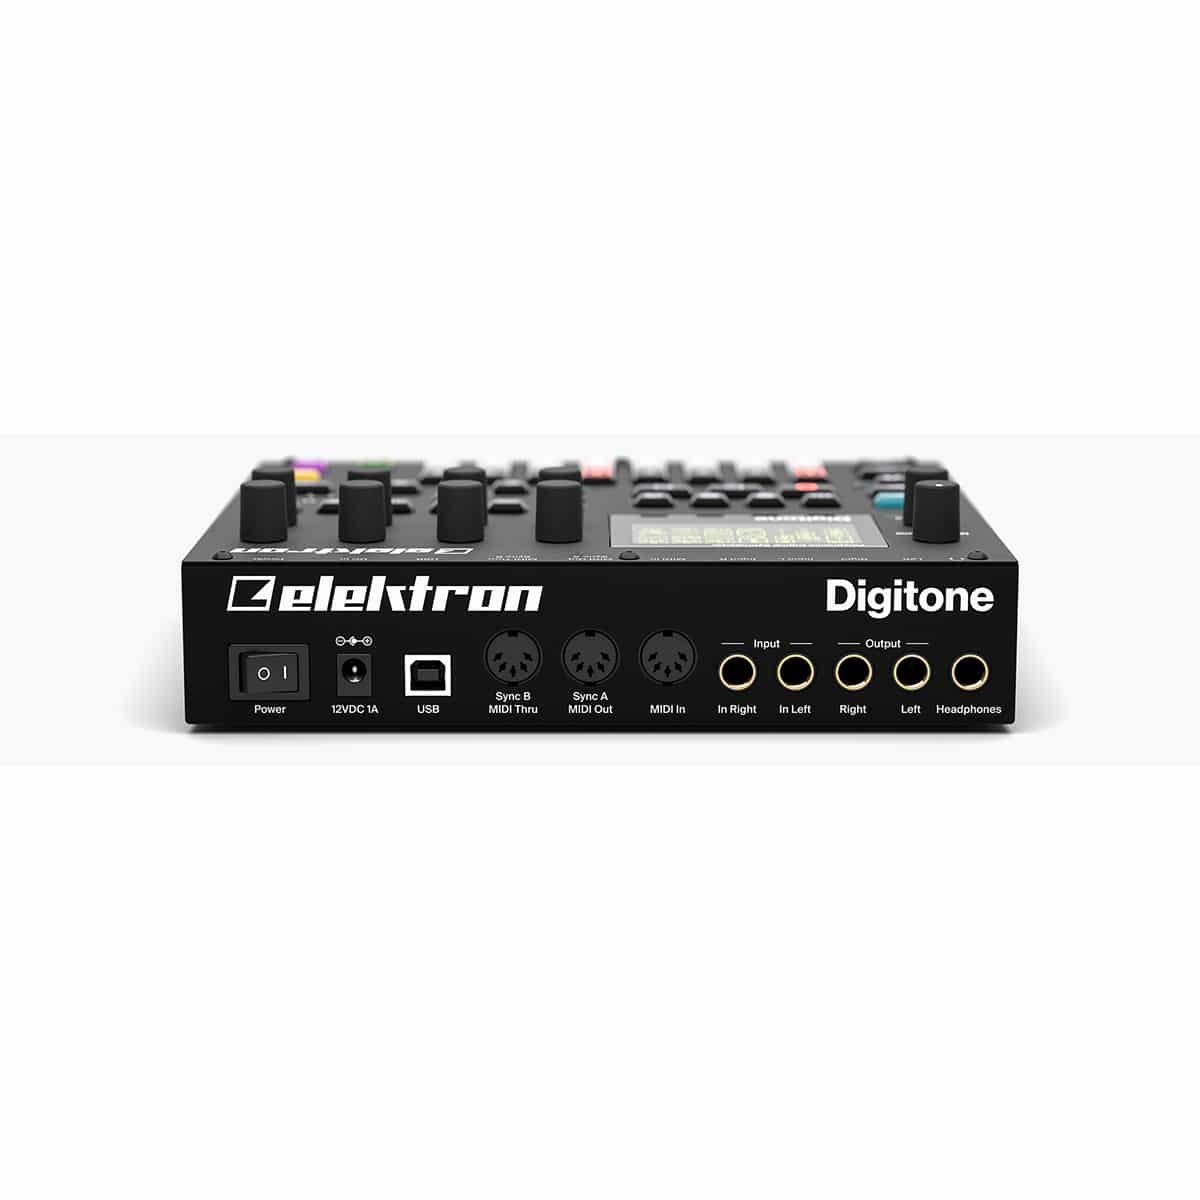 Elektron Digitone 02 Sintetizzatori e Drum Machine, Sintetizzatori e Tastiere, Synth Desktop, Drum Machines Batterie Elettroniche